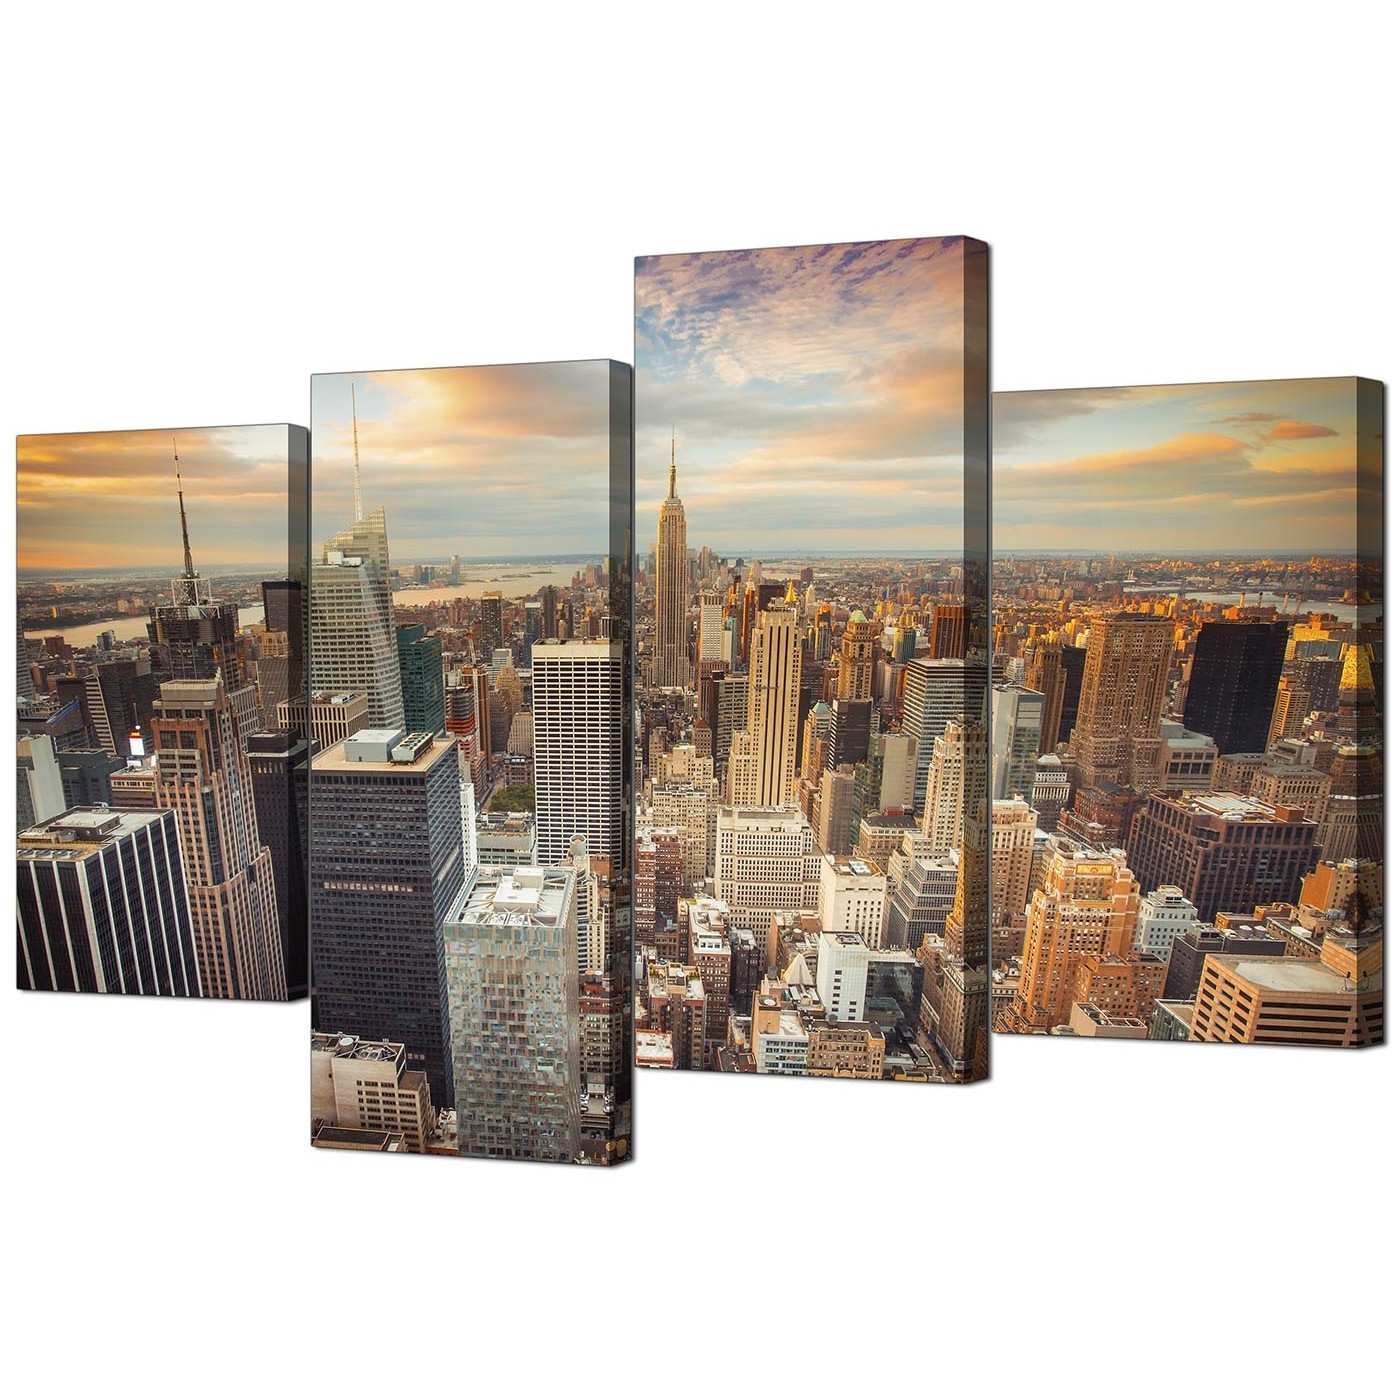 Canvas Prints Of The New York Skyline For Your Living Room – 4 Panel Inside Newest New York Canvas Wall Art (View 2 of 15)